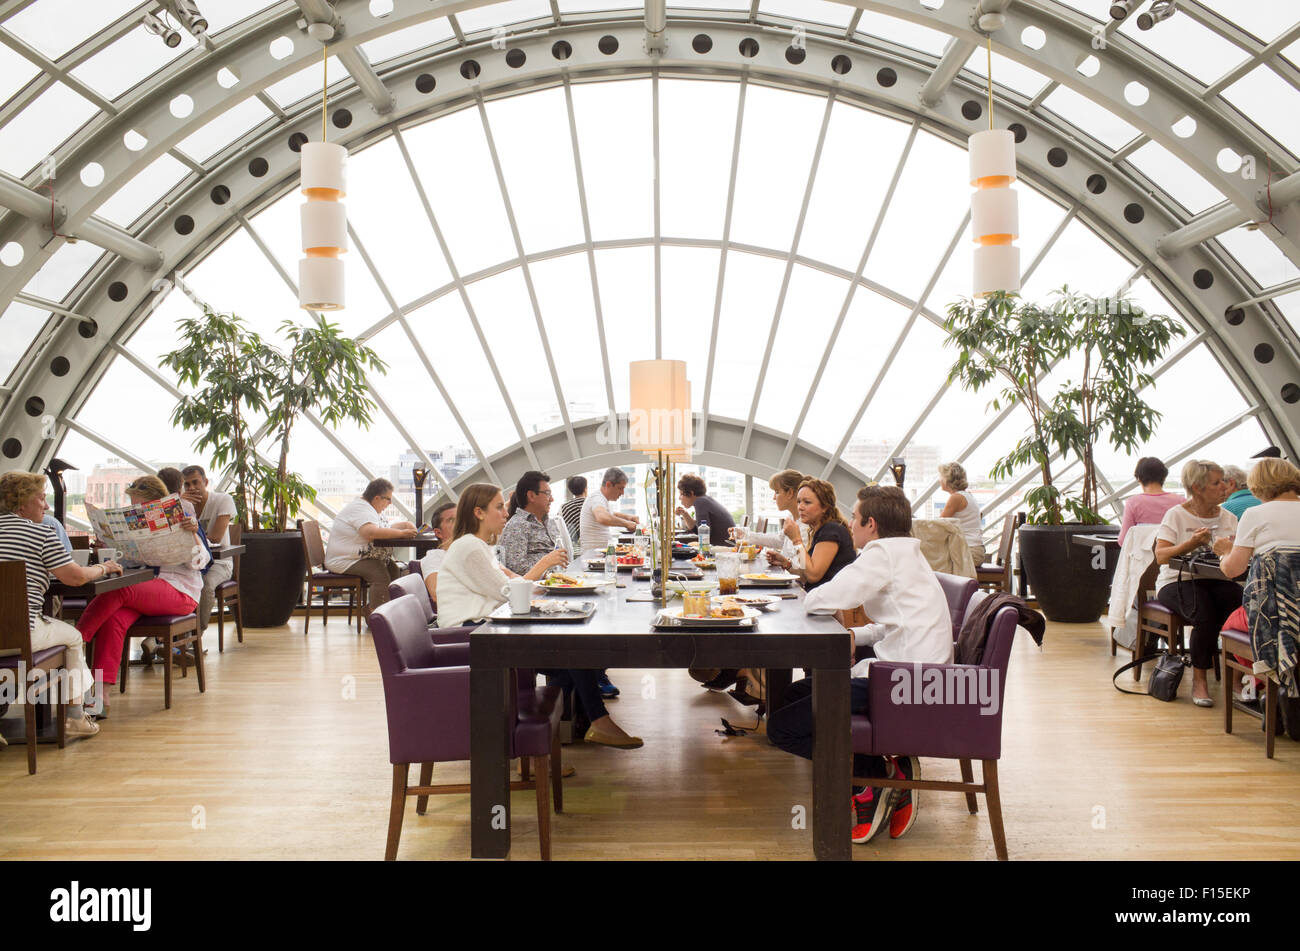 wintergarten restaurant on top floor of kadewe department store stock photo royalty free image. Black Bedroom Furniture Sets. Home Design Ideas